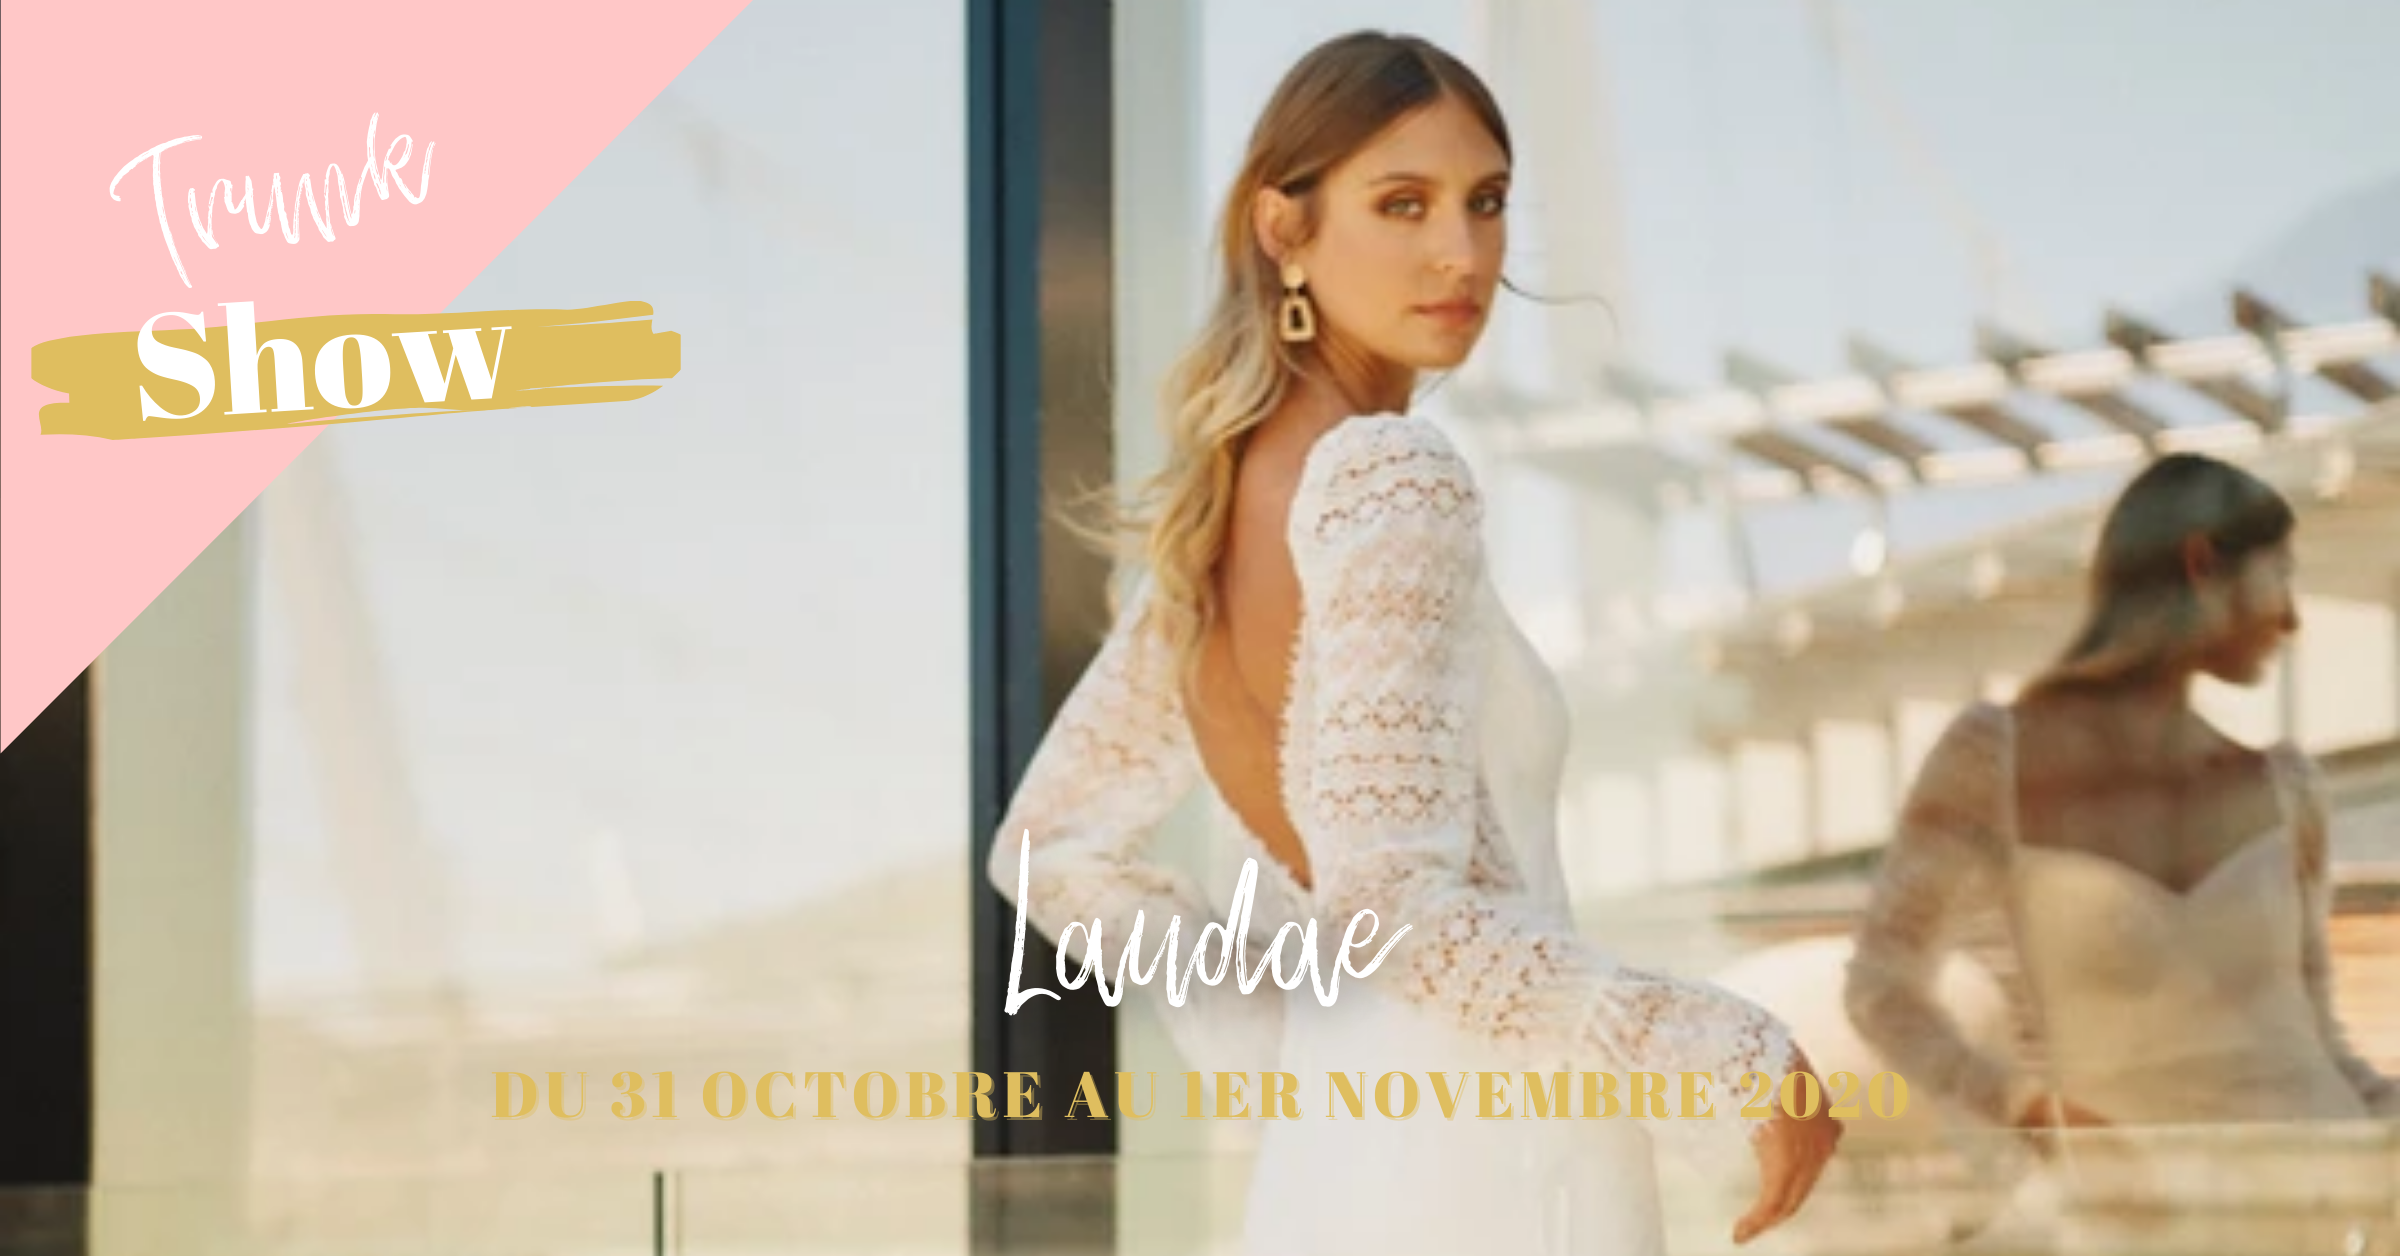 Laudae from 31st October to 1st November 2020